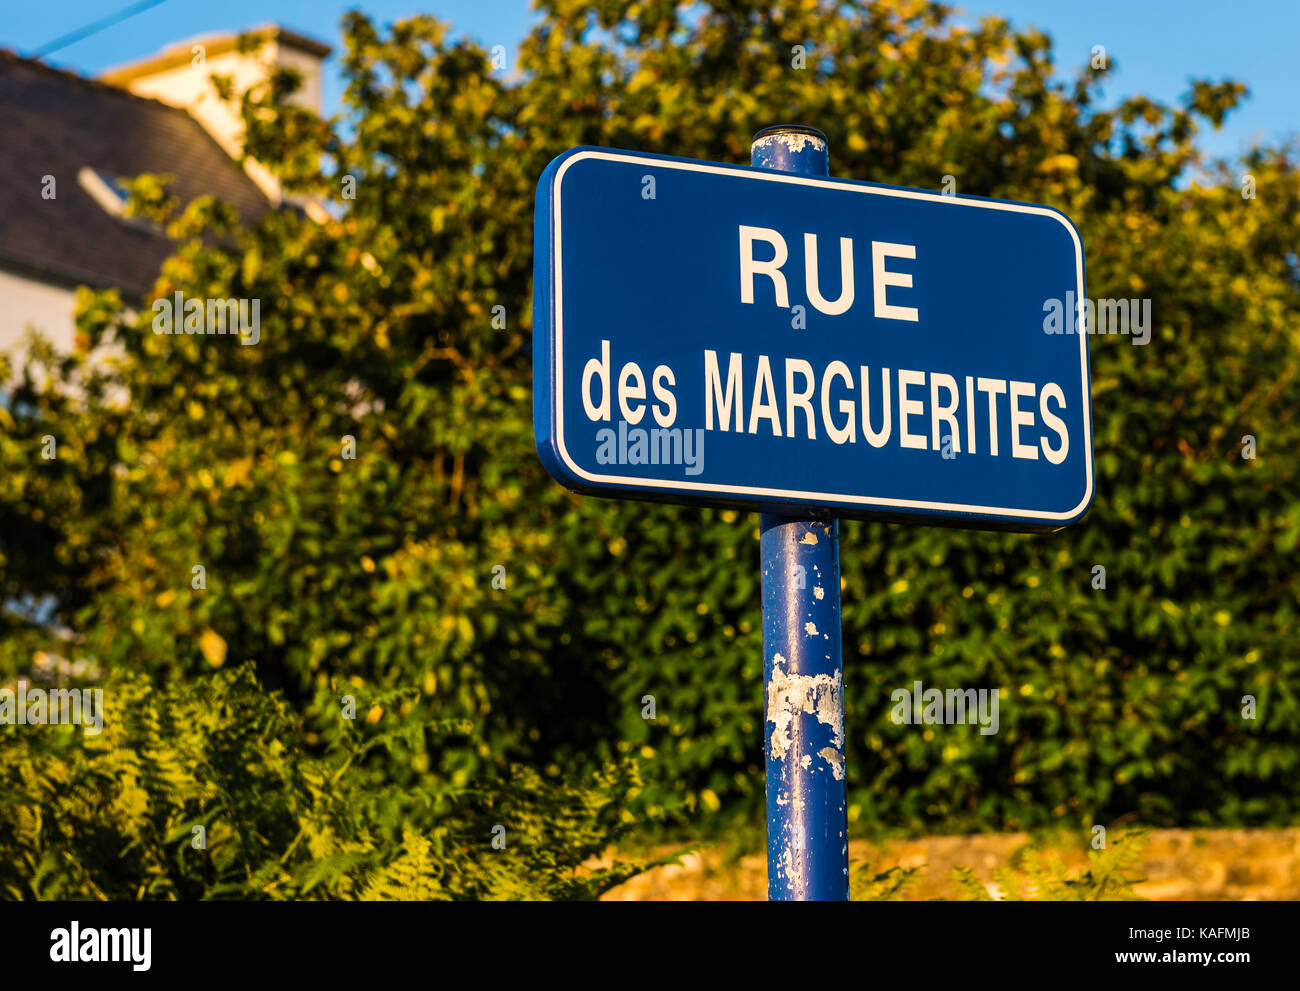 Road sign in evening sunlight, Brittany, France - Stock Image